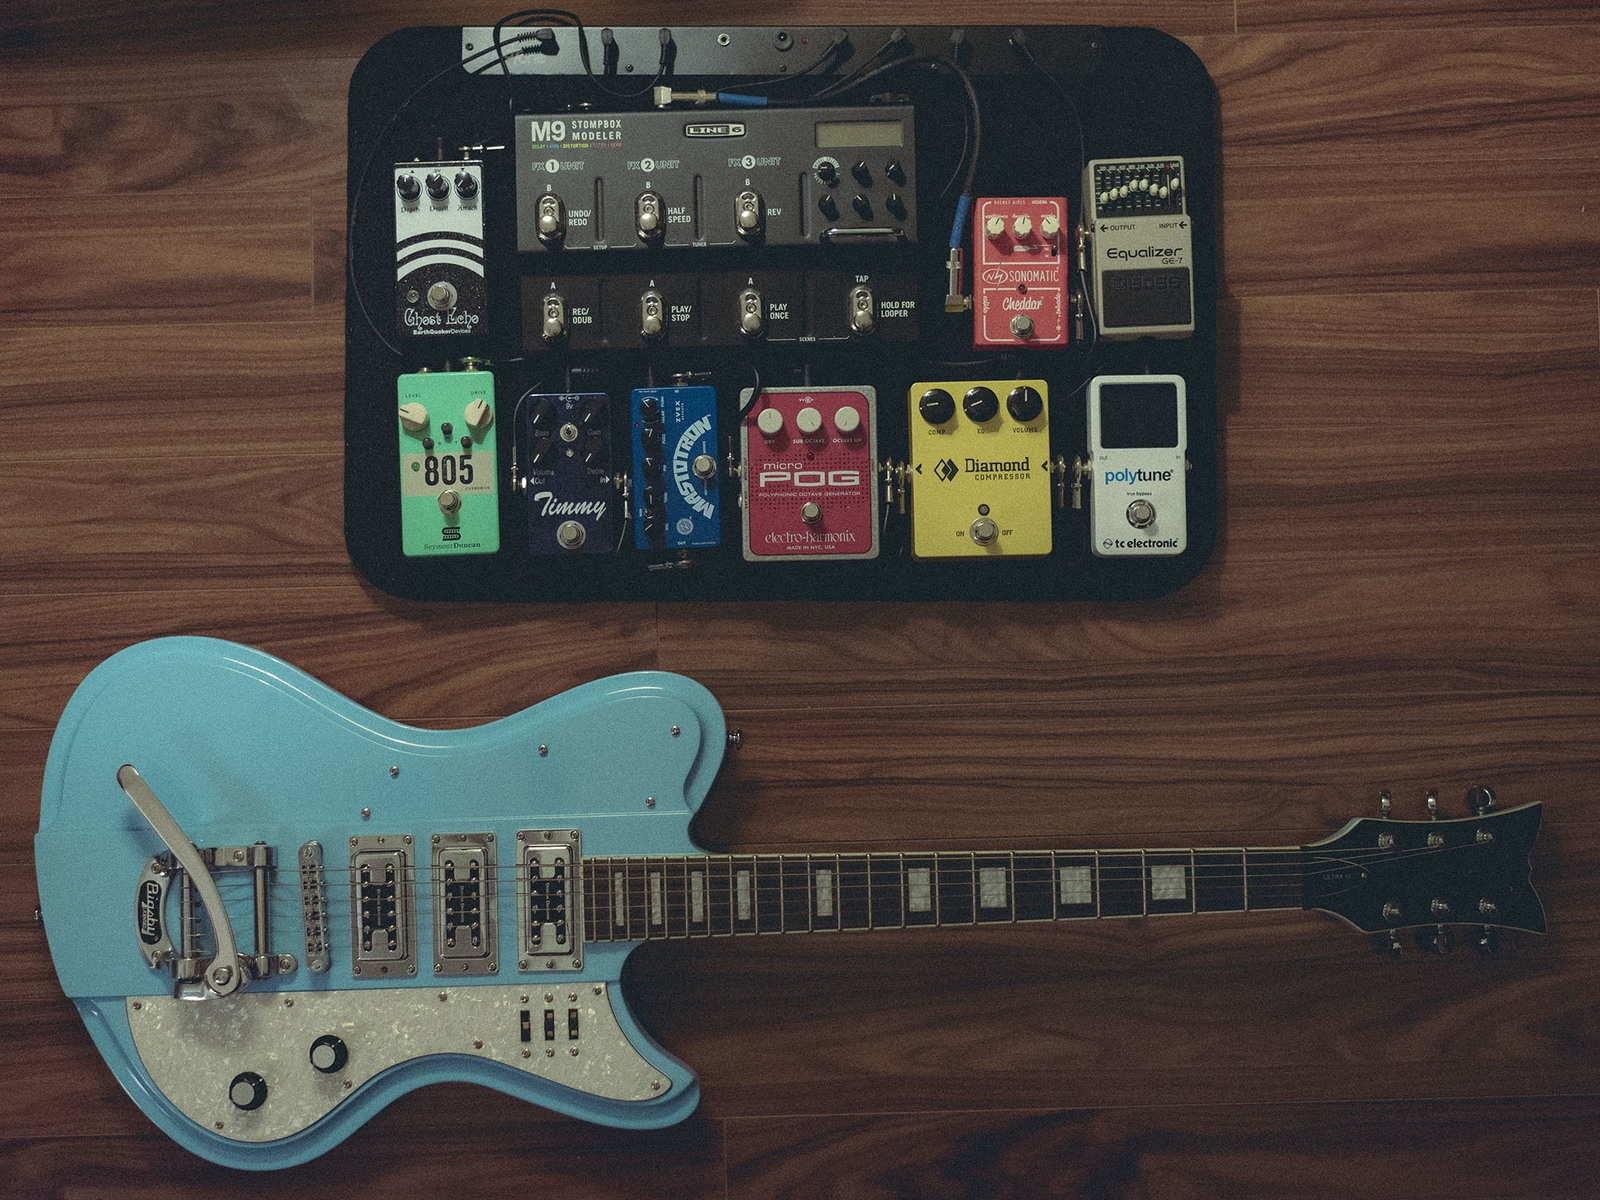 Photo of Paul Cochrane Timmy Transparent Overdrive and more gear in a pedalboard, guitar, and signal chain